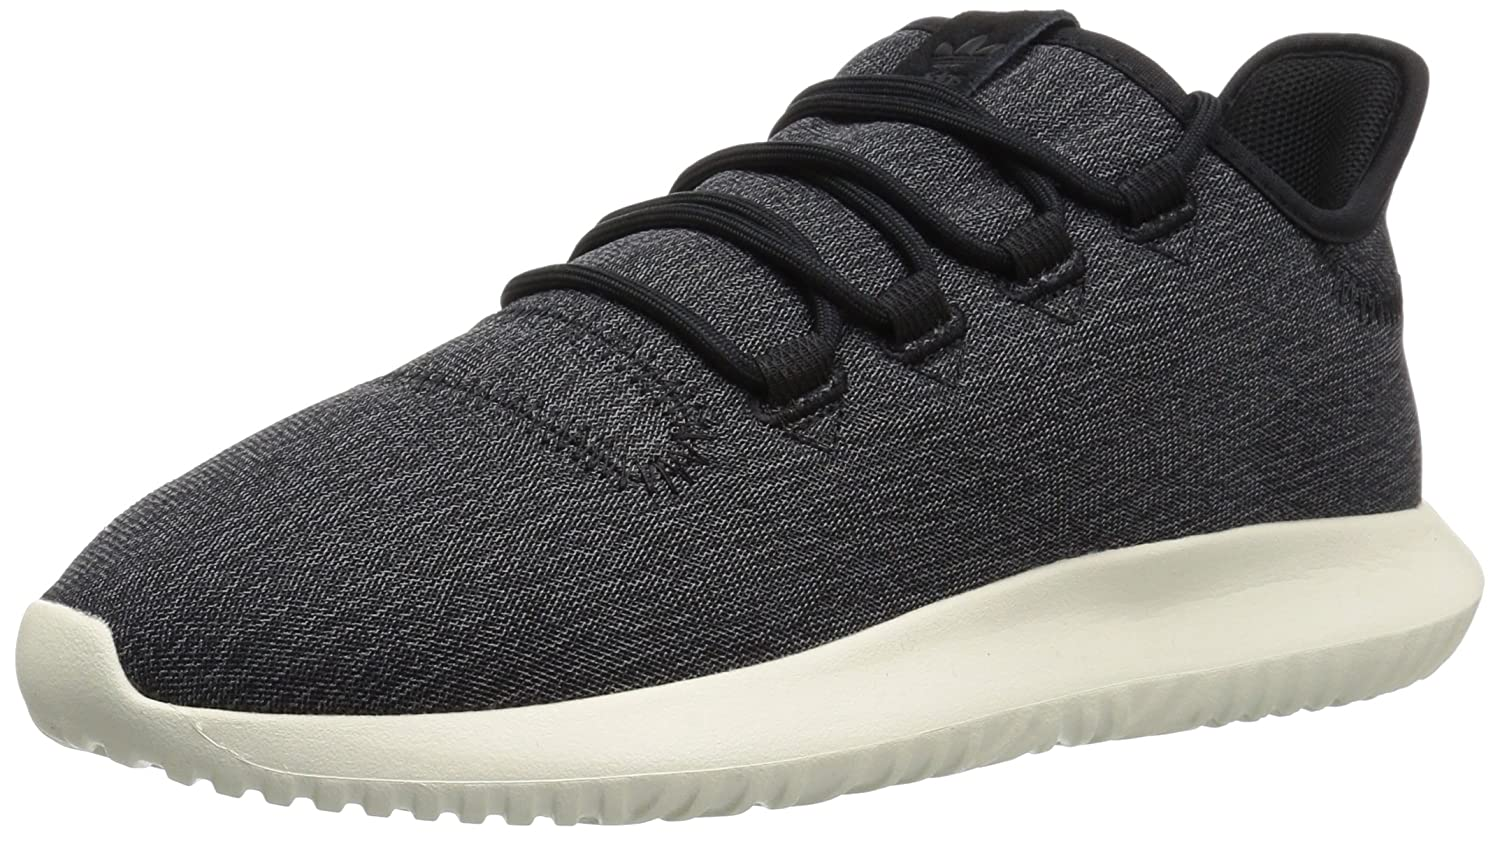 adidas Originals Women's Tubular Shadow W Fashion Sneaker B071WB2JMR 11 B(M) US|Core Black/Black/Legacy White